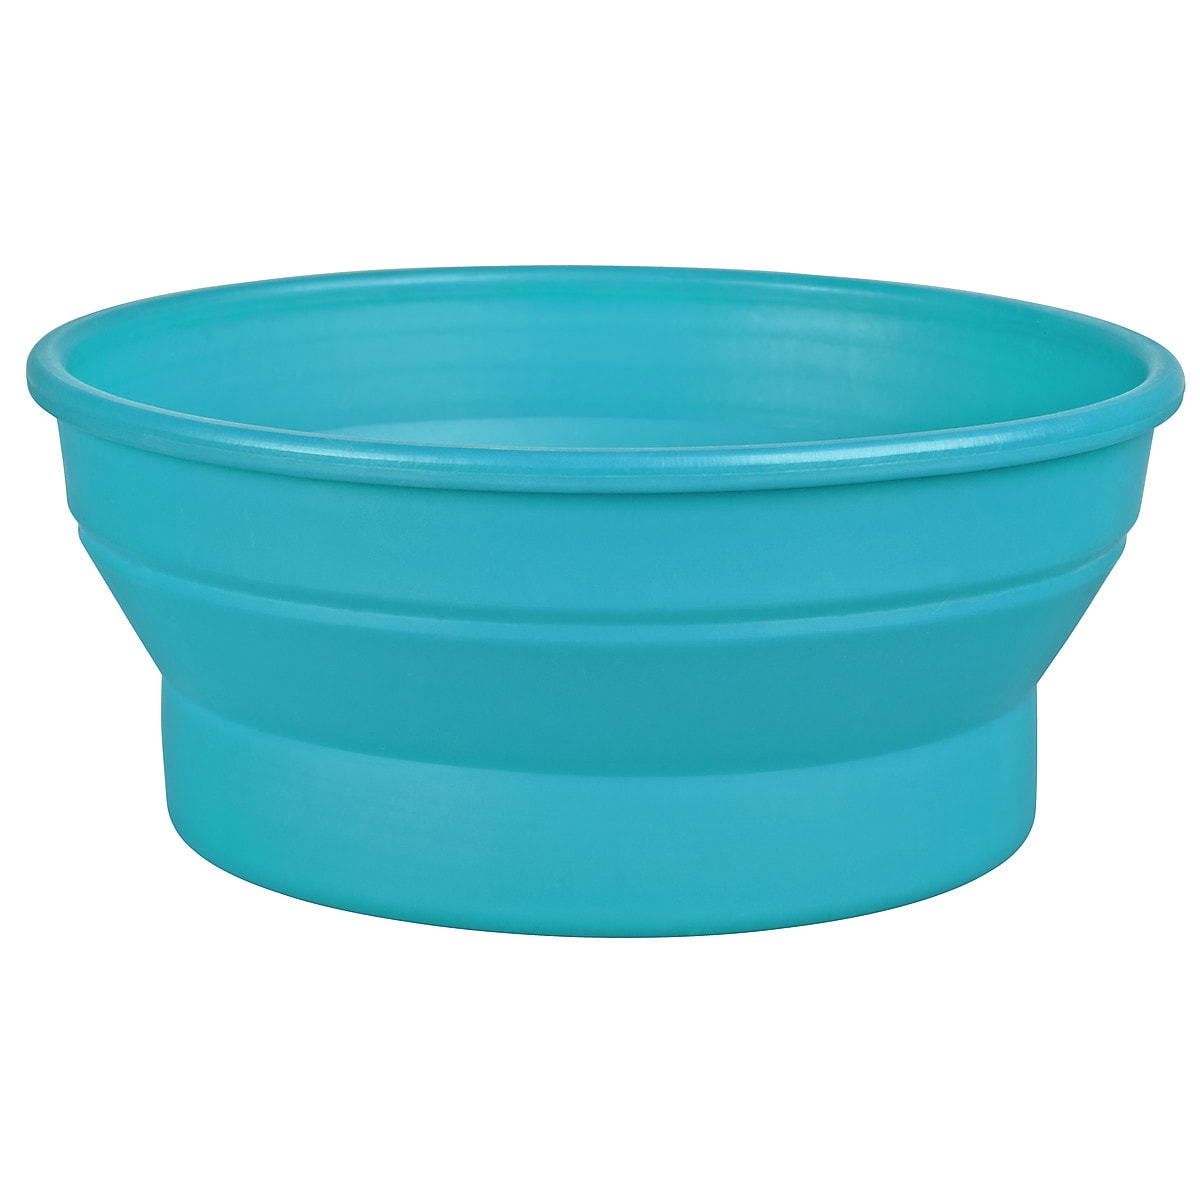 Asaklitt Collapsible Plate/Bowl